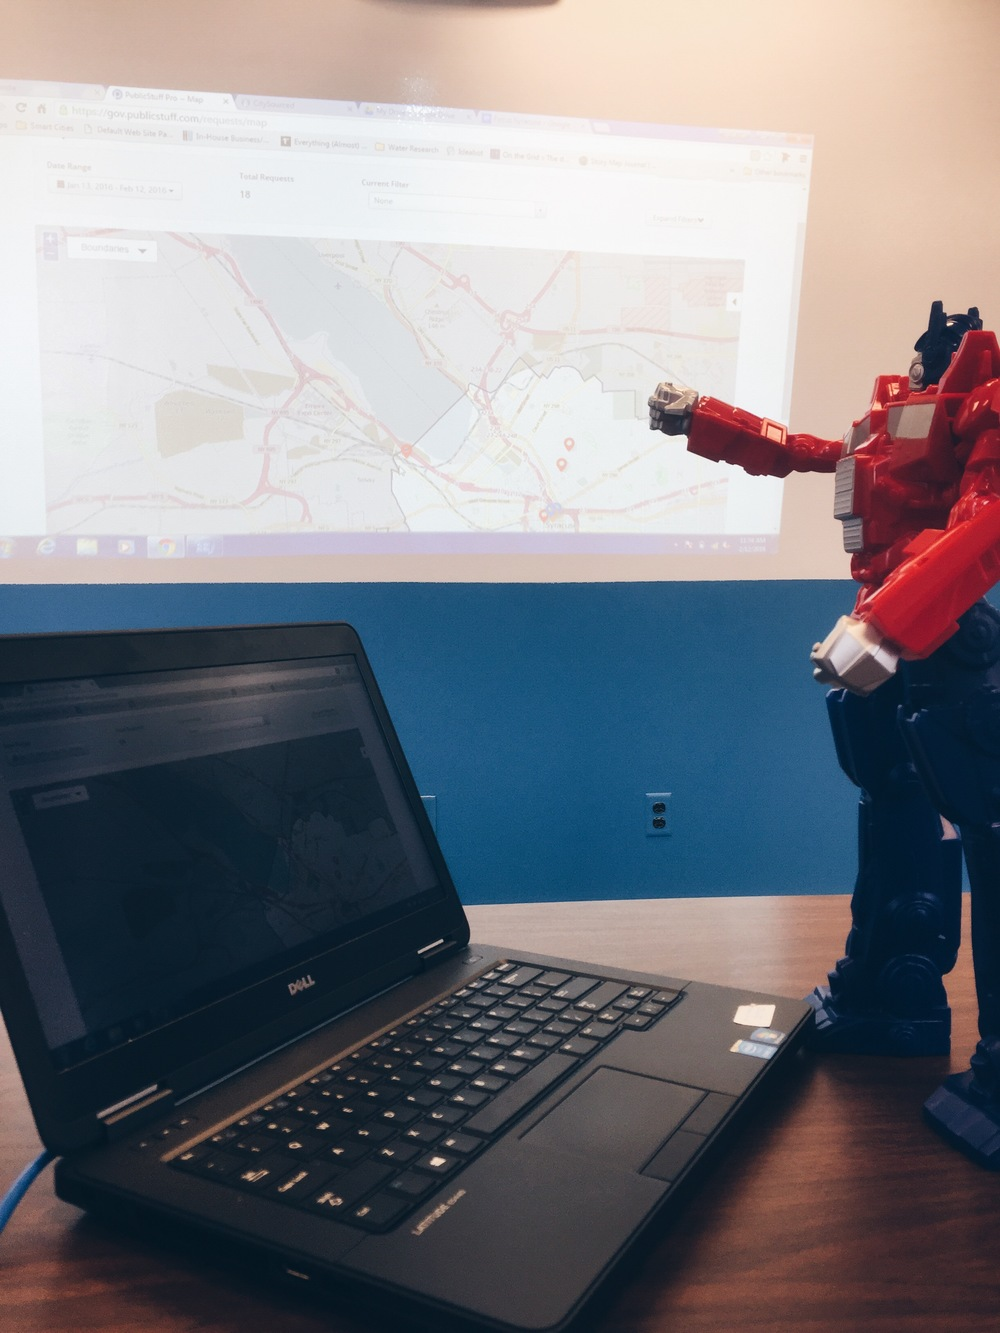 Rod was really into ArcGIS.  He helped us build the story map that we featured in one of our previous posts.